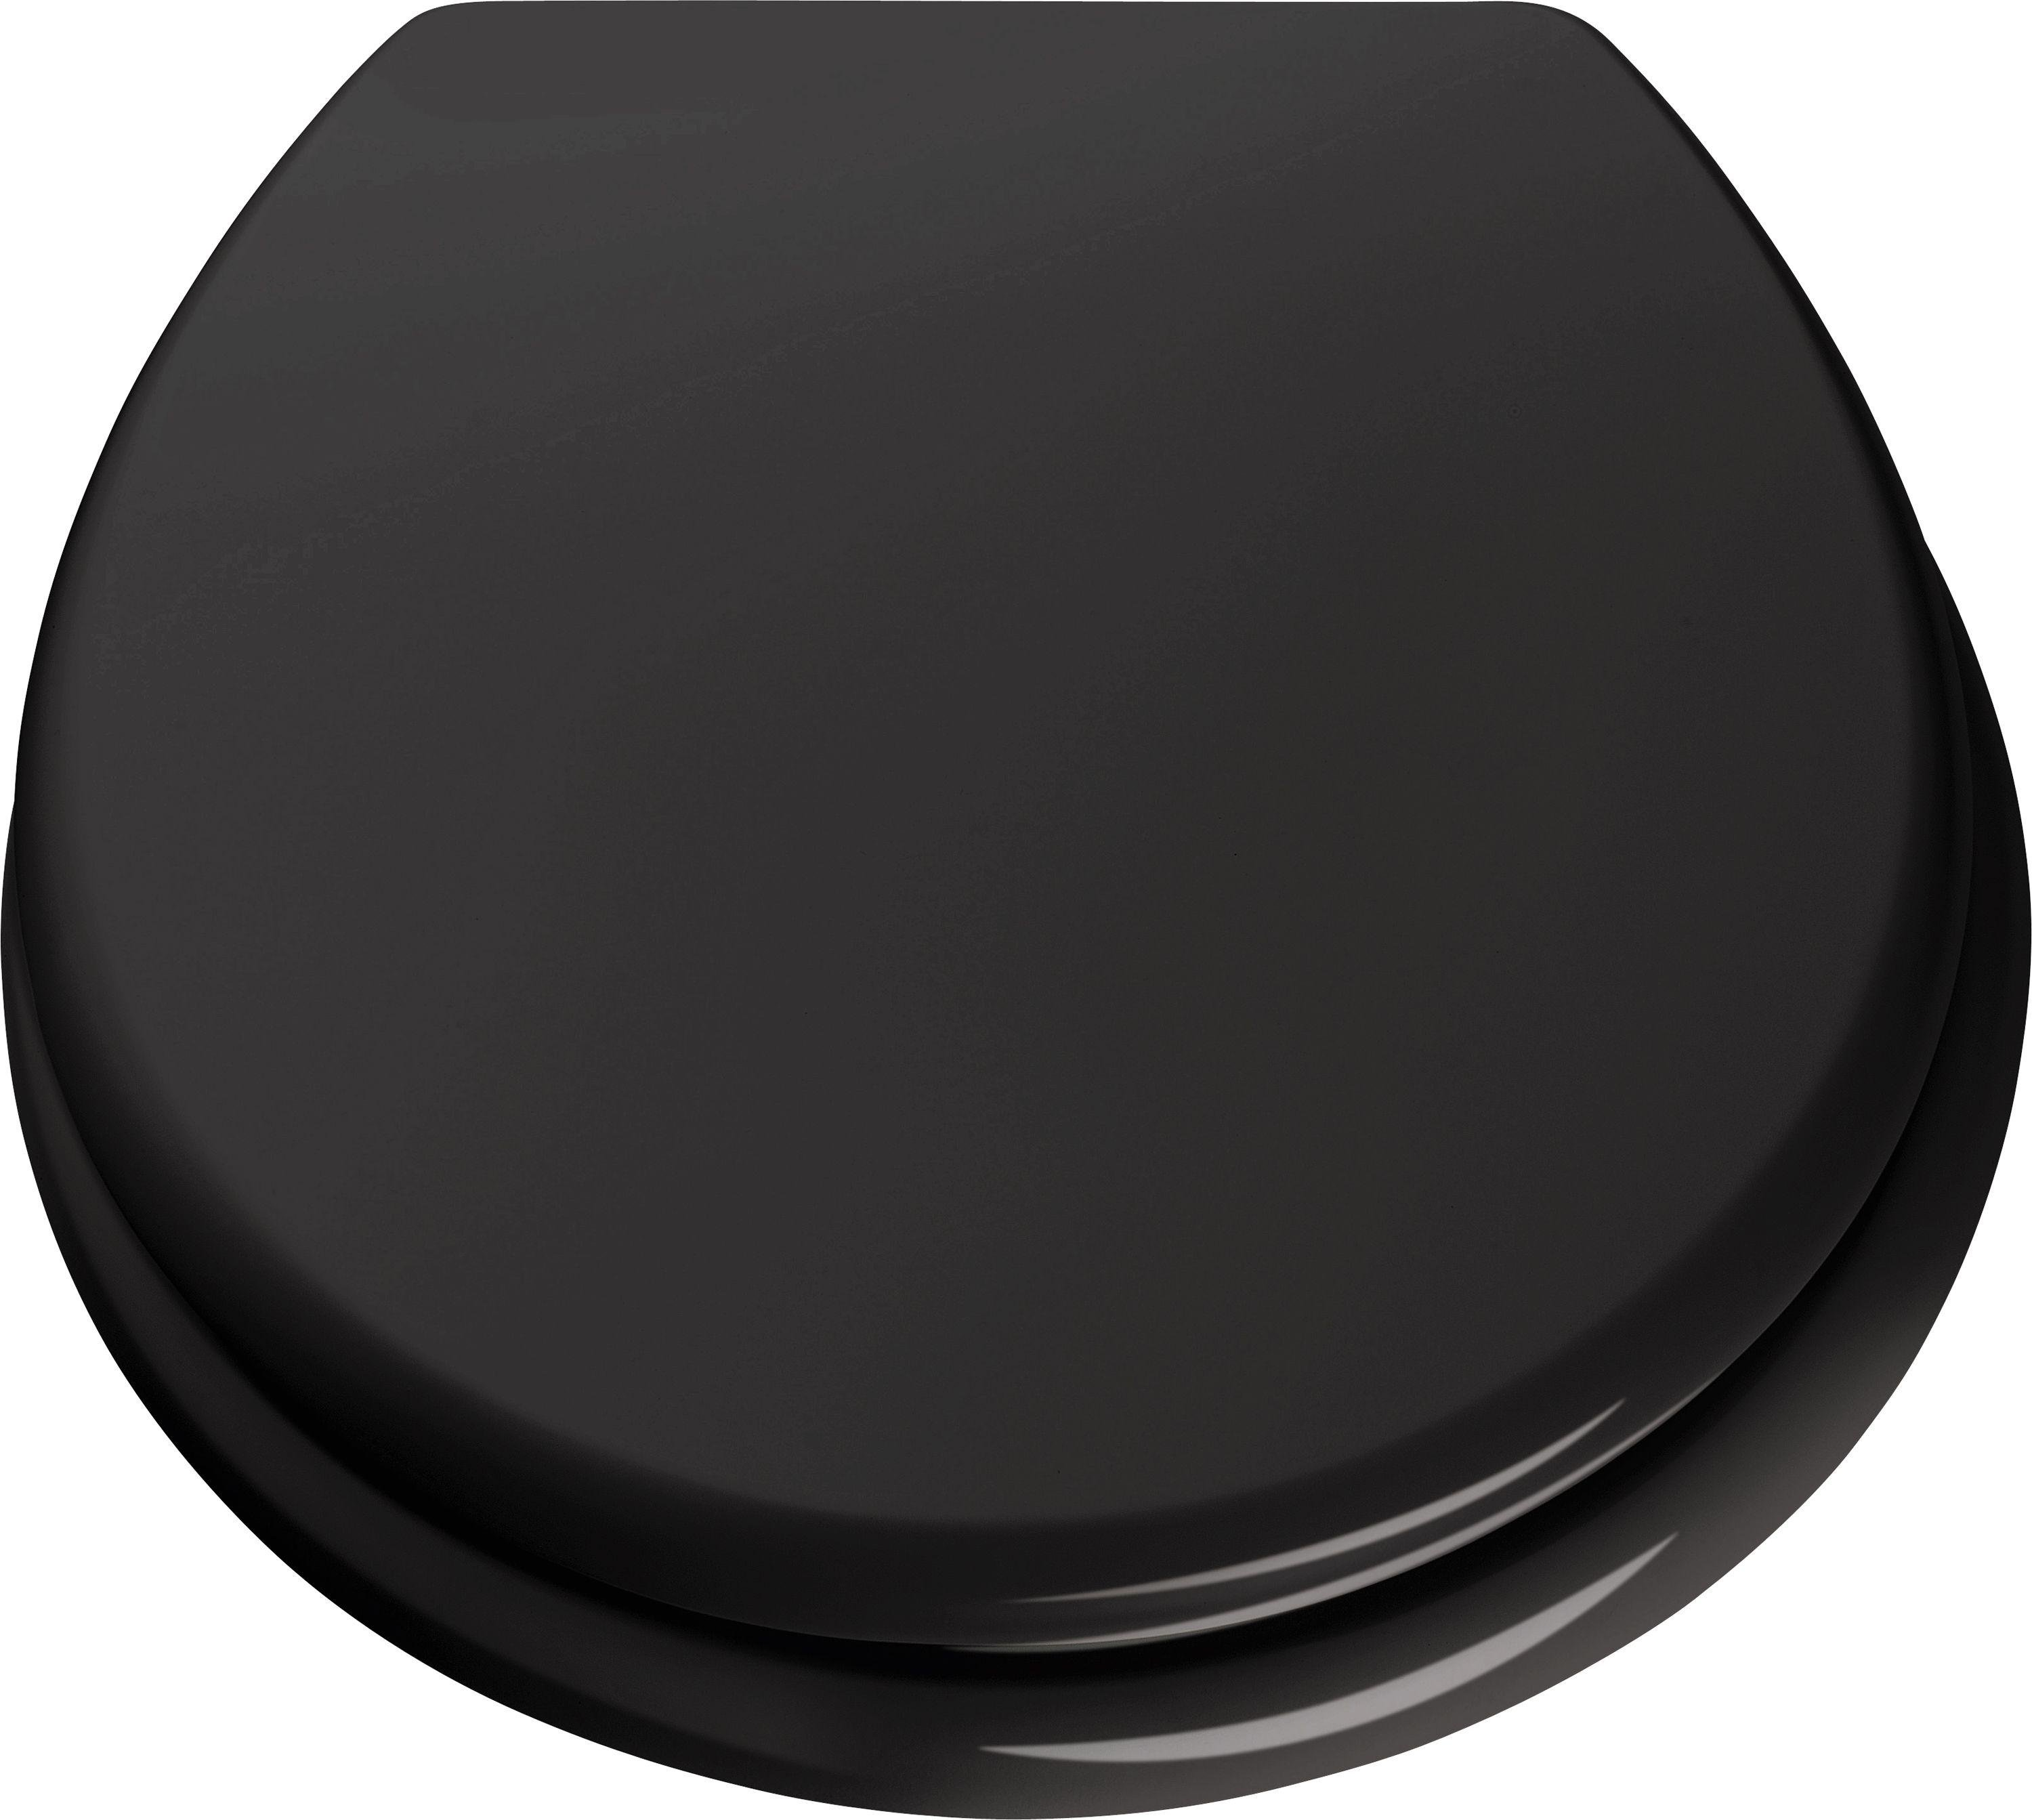 Buy ColourMatch Moulded Wood Toilet Seat Jet Black at Argosco